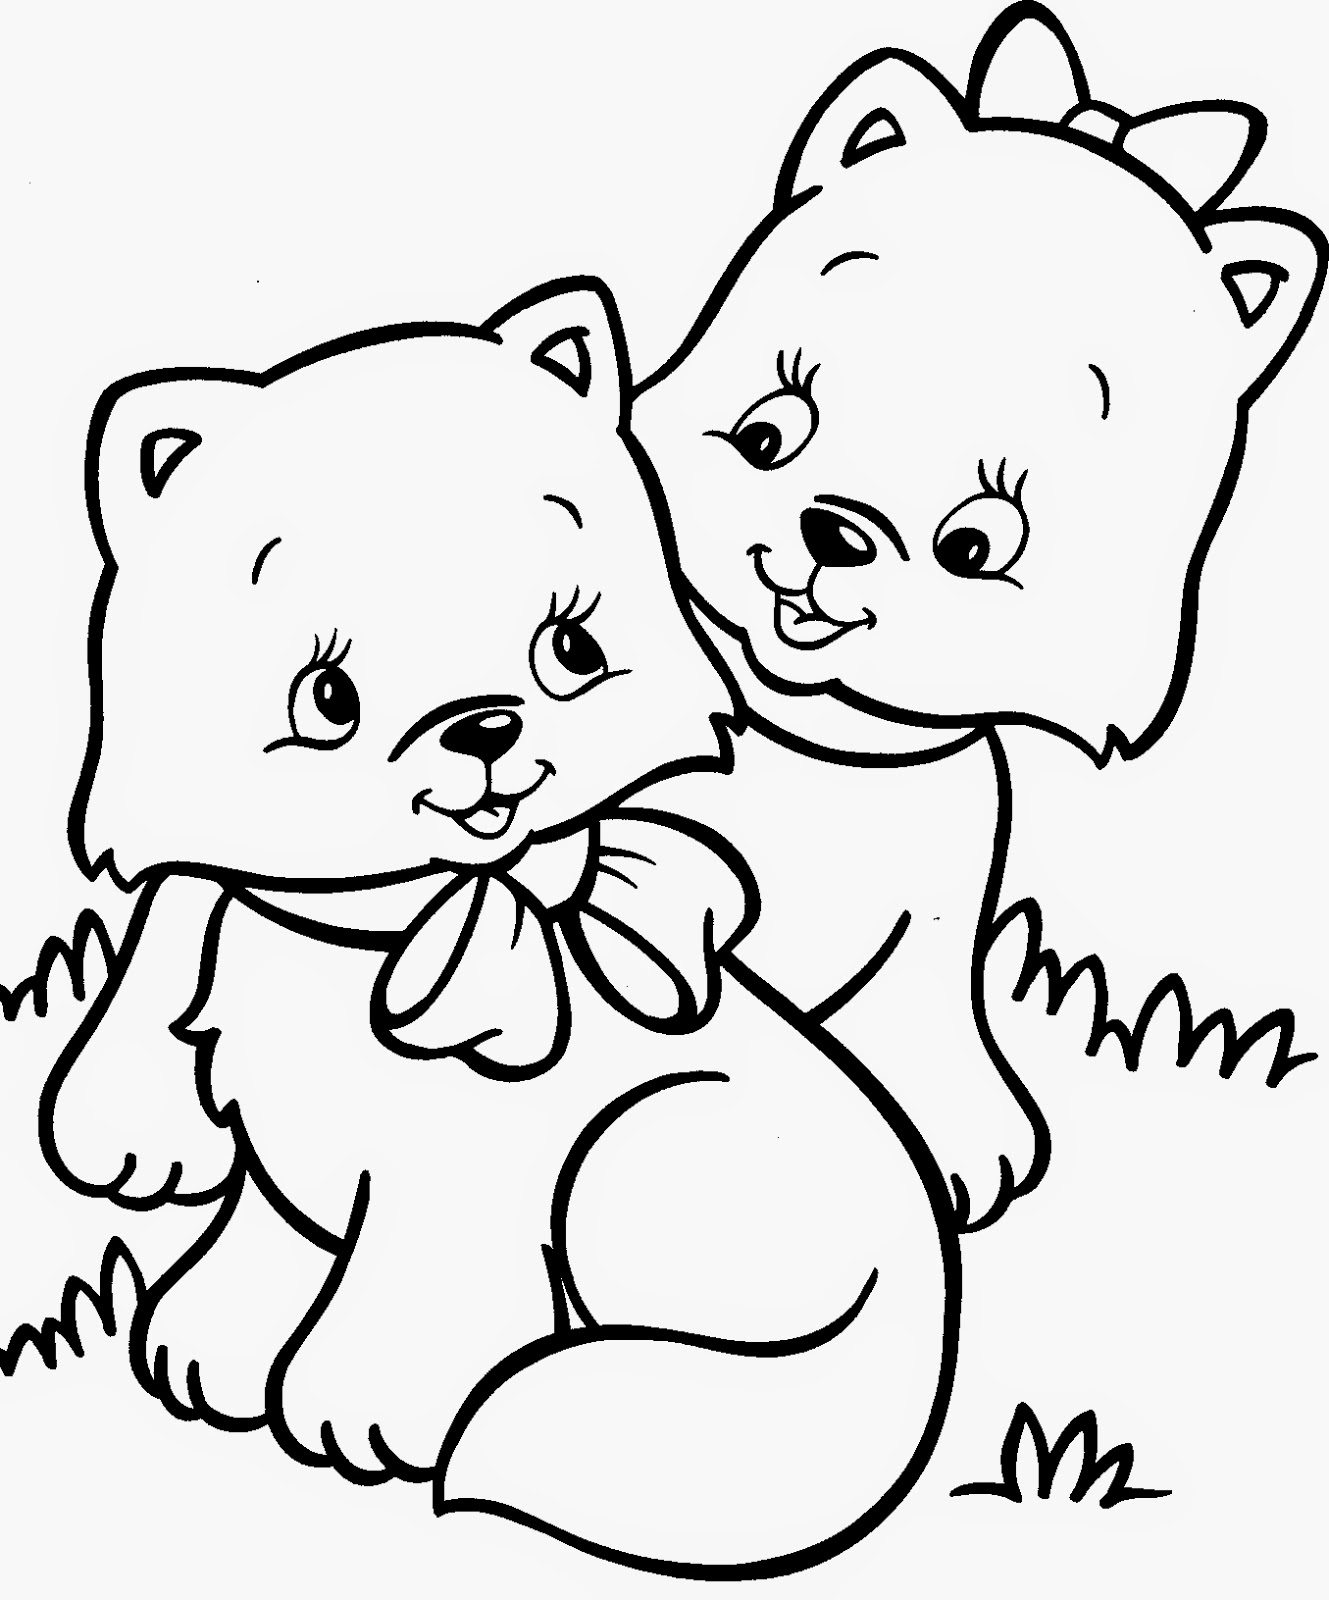 kitten coloring cute cat animal coloring pages for kids to print color kitten coloring